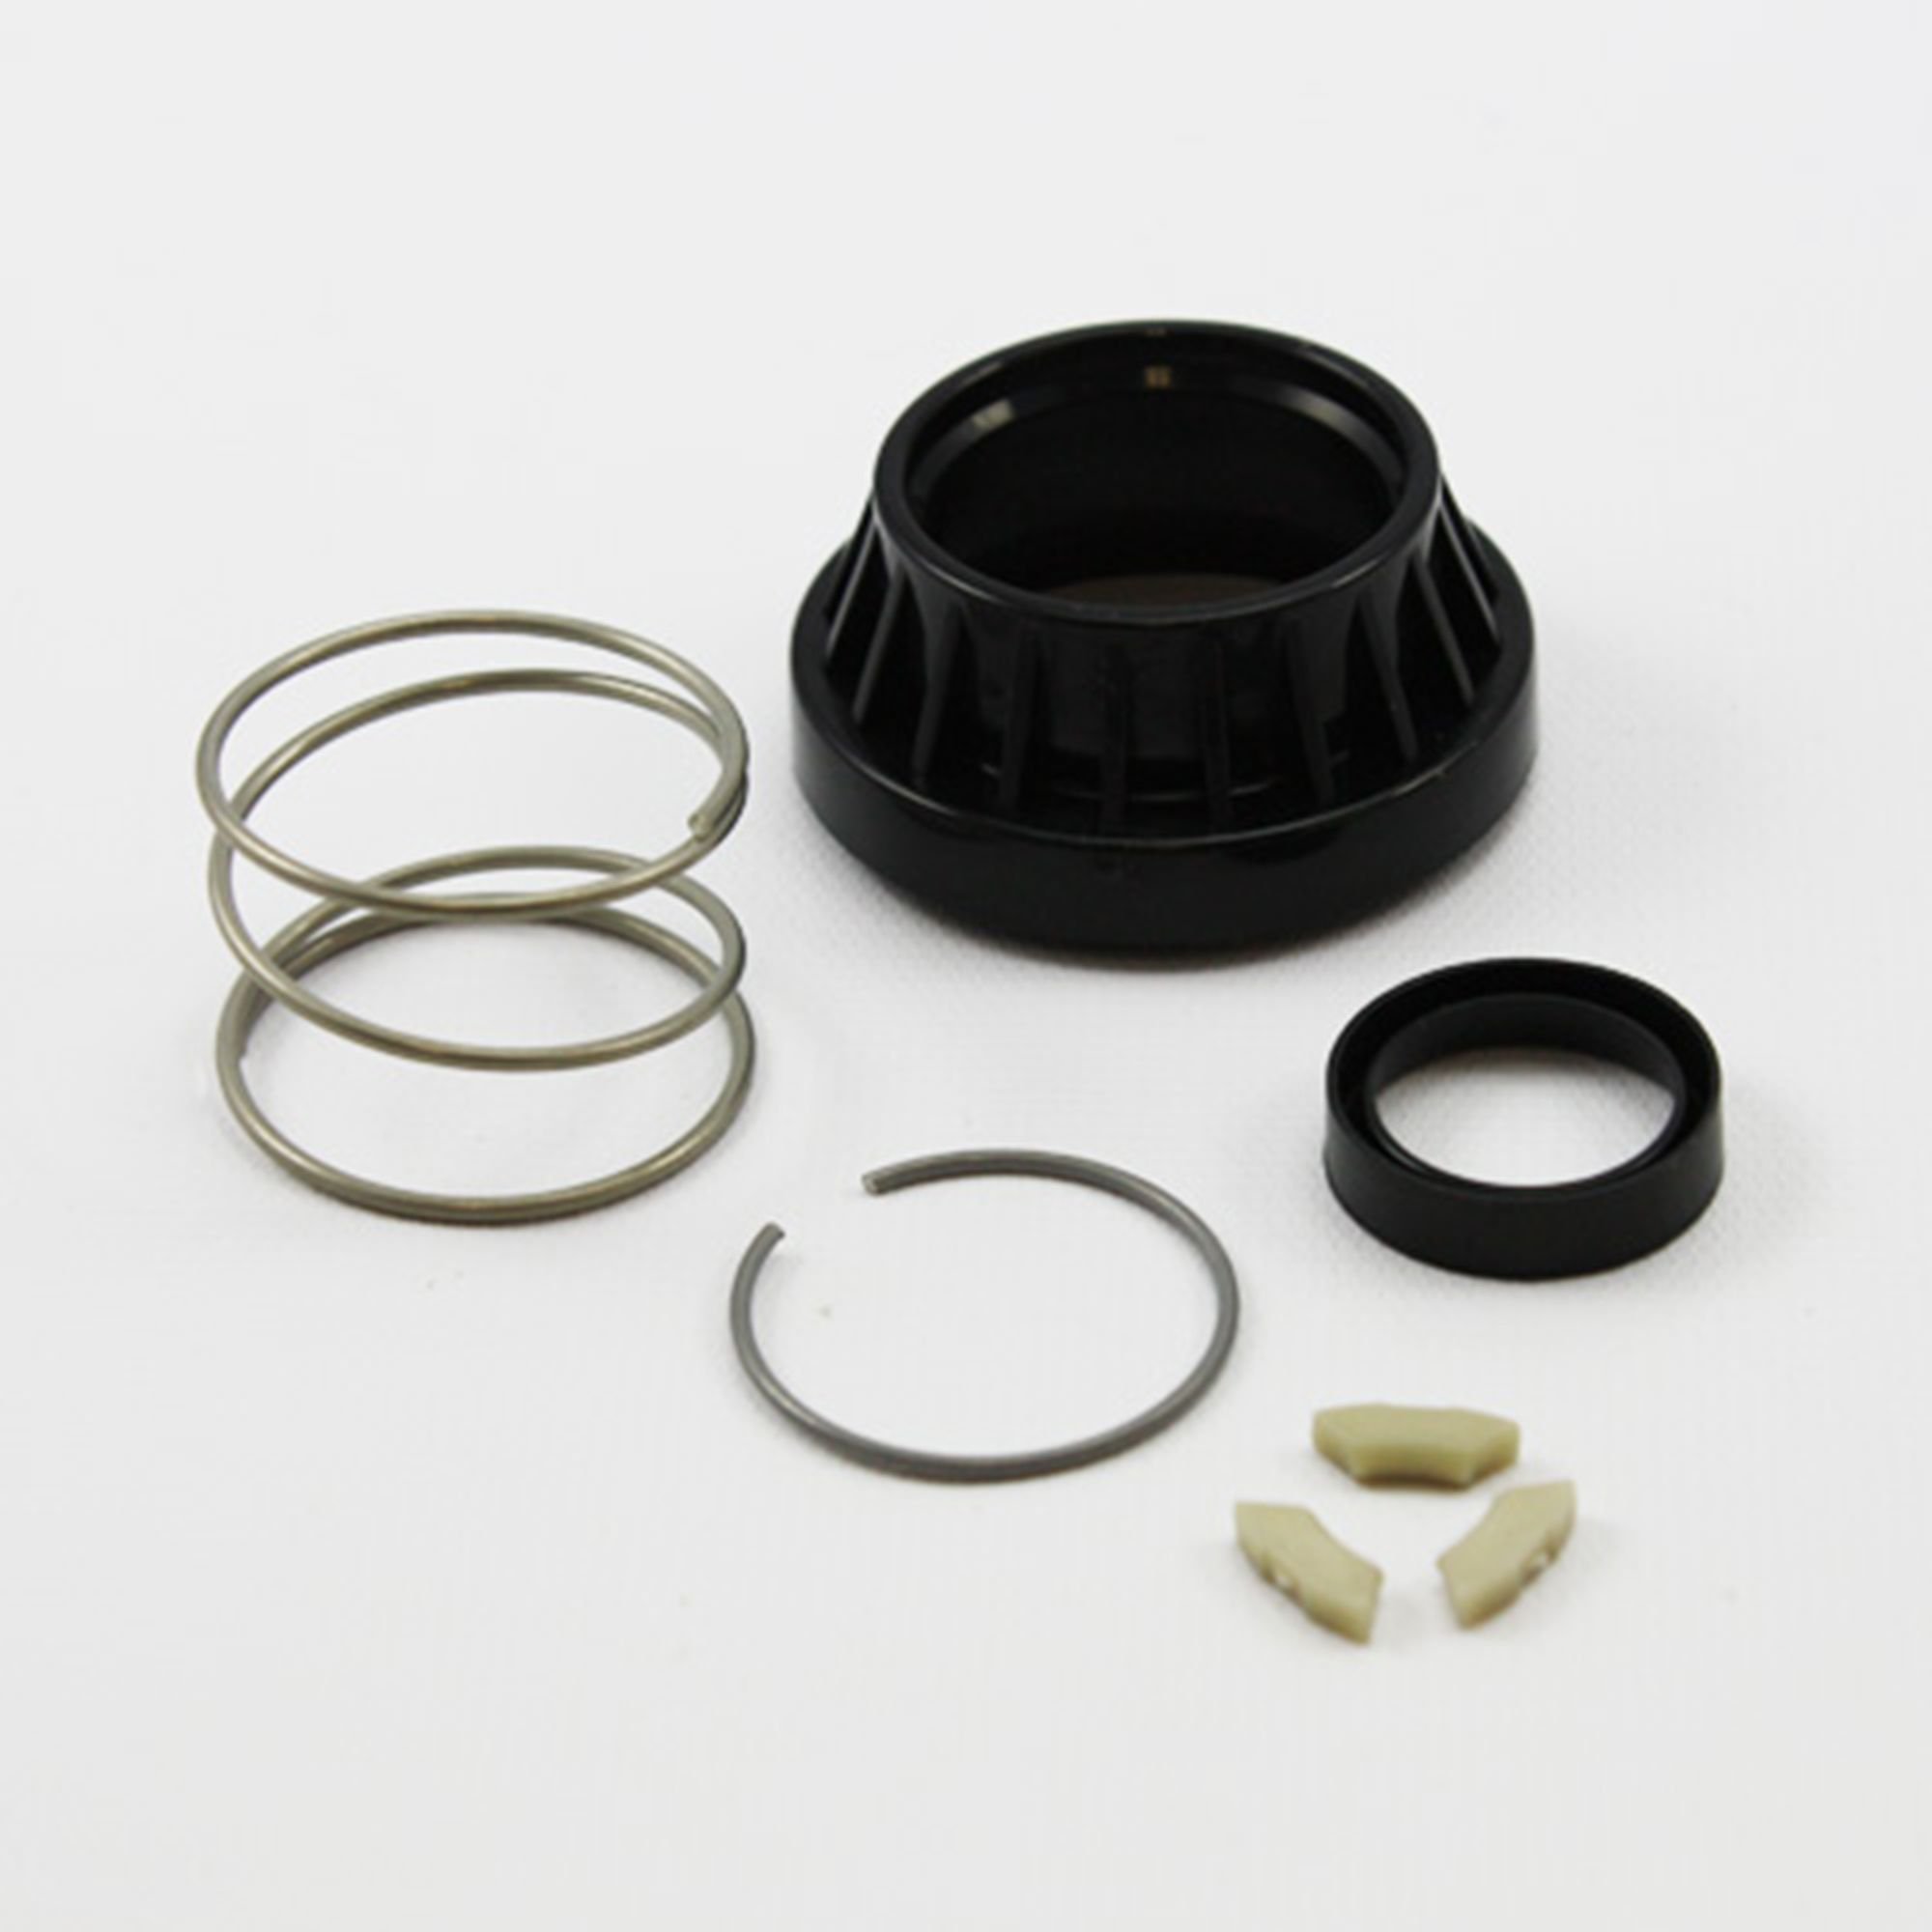 Wp285170 for whirlpool portable dishwasher faucet adapter repair kit ebay - Kenmore washer coupler replacement ...